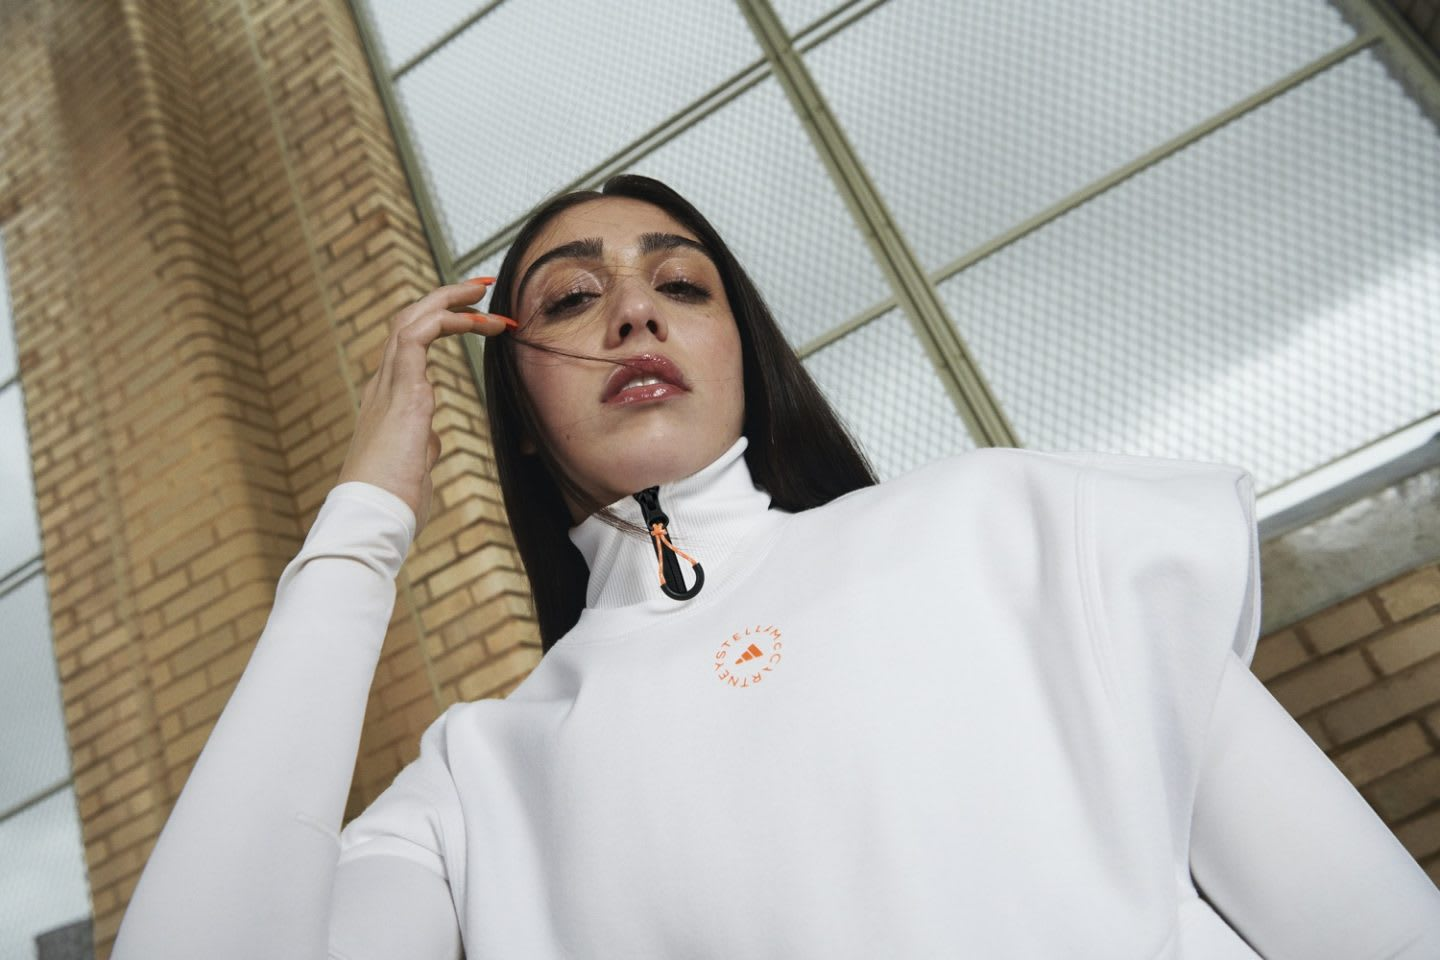 Woman with dark hair wearing white shirt and white jacket posing, Stella McCartney, style, sports, design